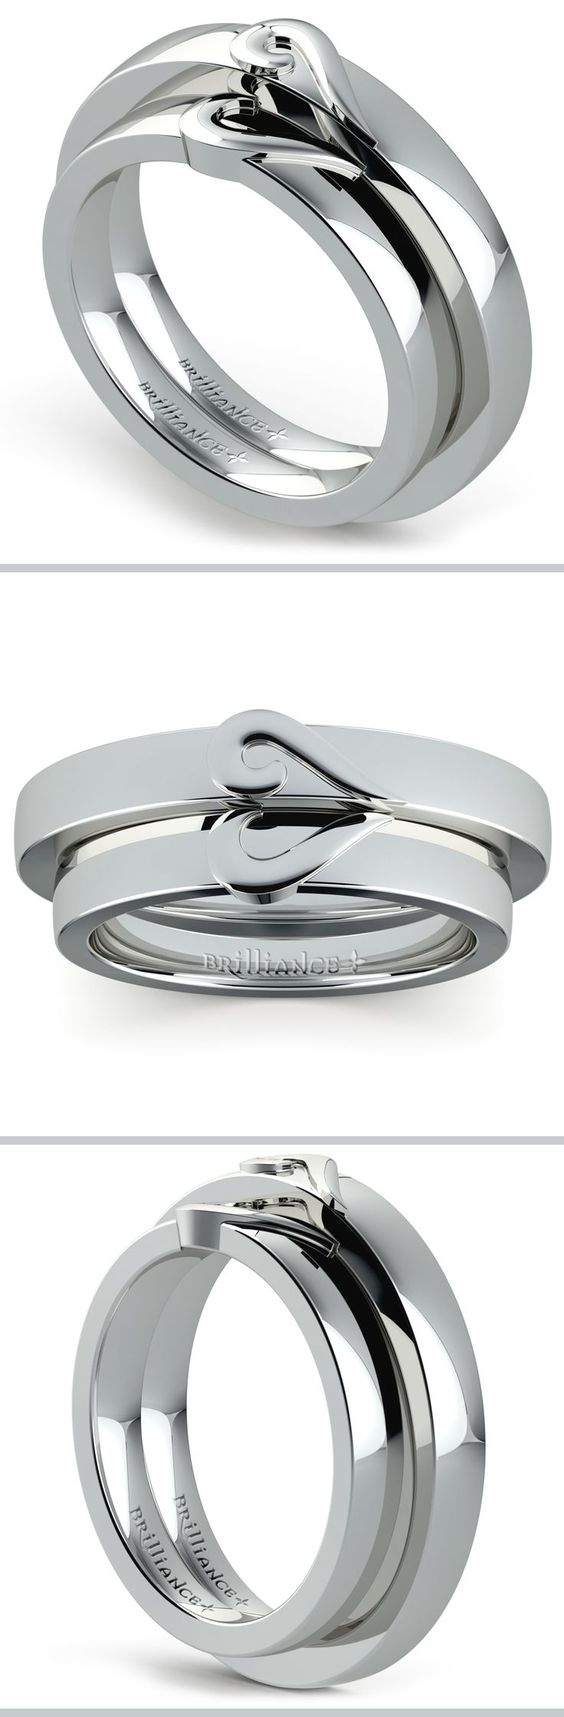 This wedding set features matching his and hers 3.5 mm bands in white gold, each with a curled half-heart design.